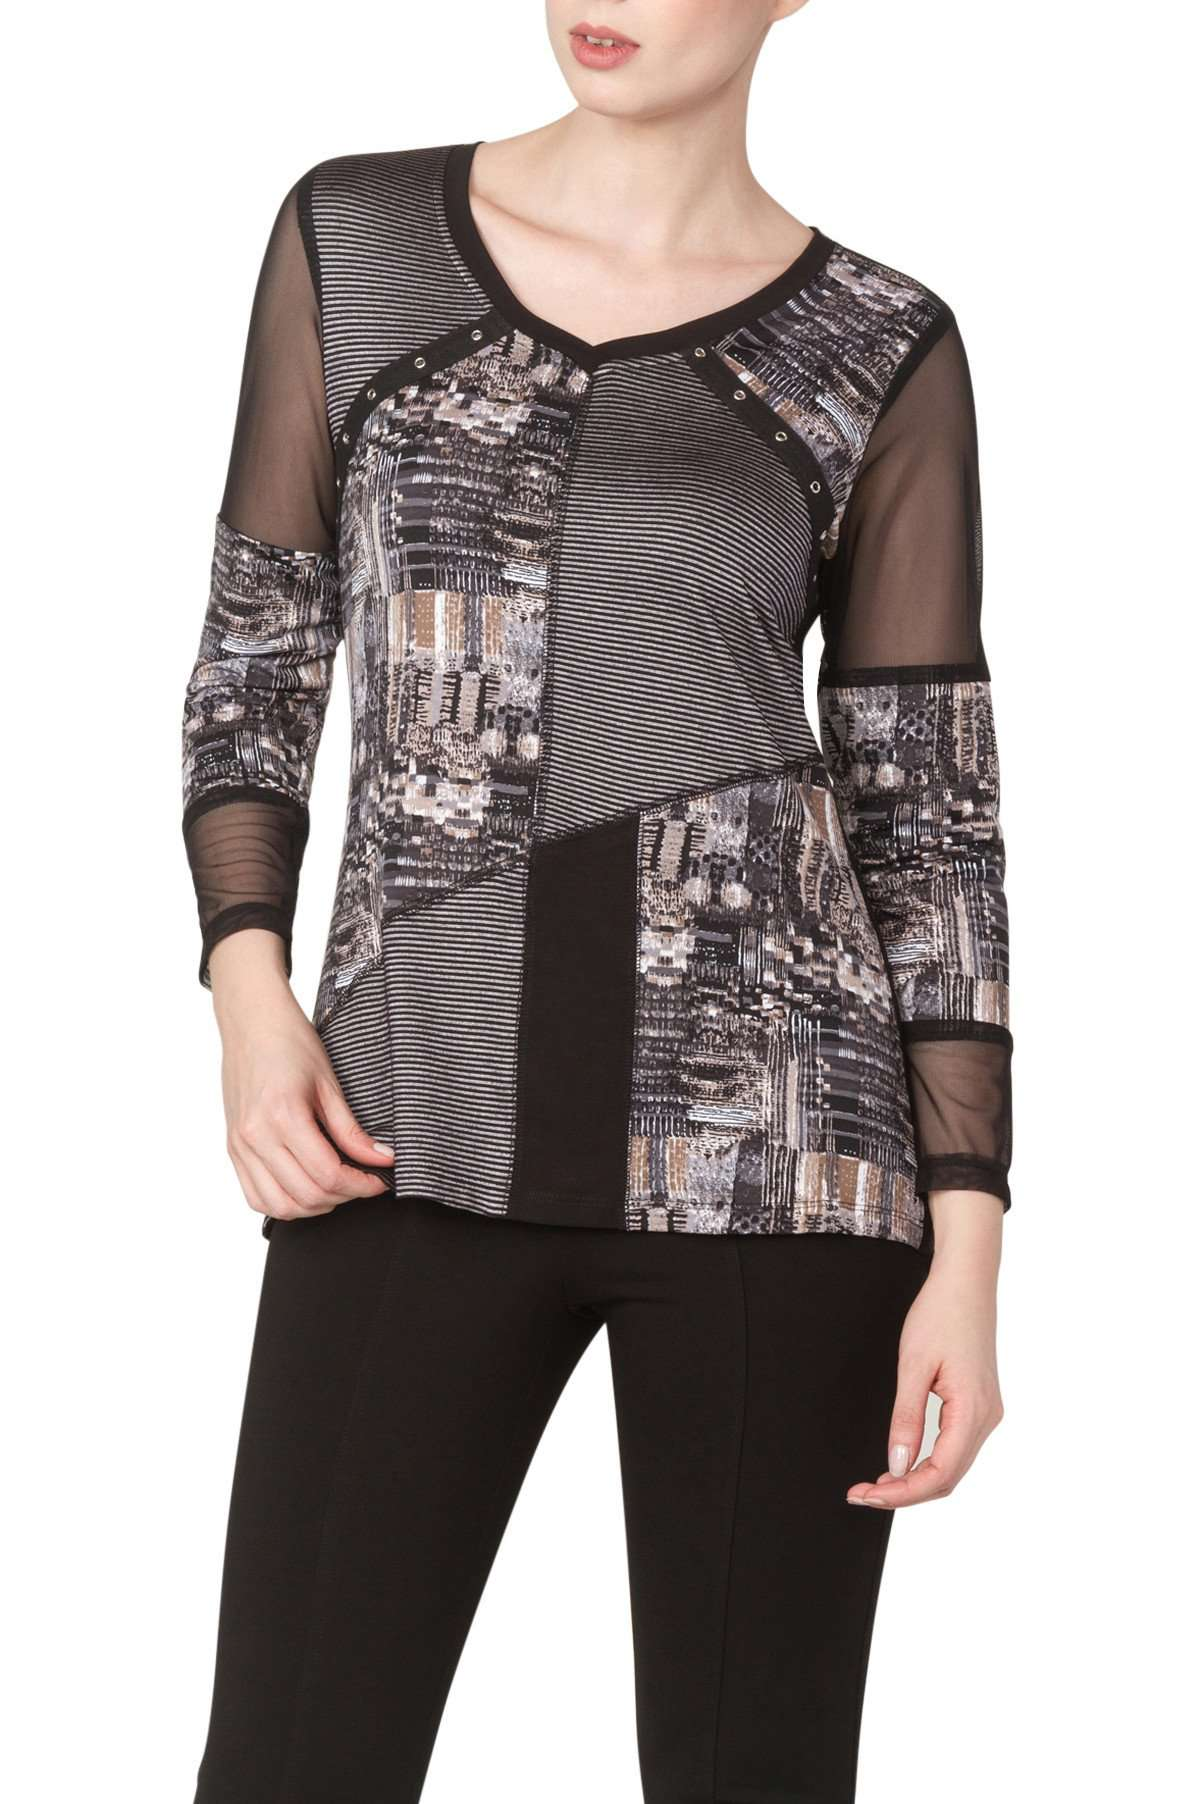 Women's Tops on Sale Flattering Design Print with Stripes - Made in Canada - Yvonne Marie - Yvonne Marie